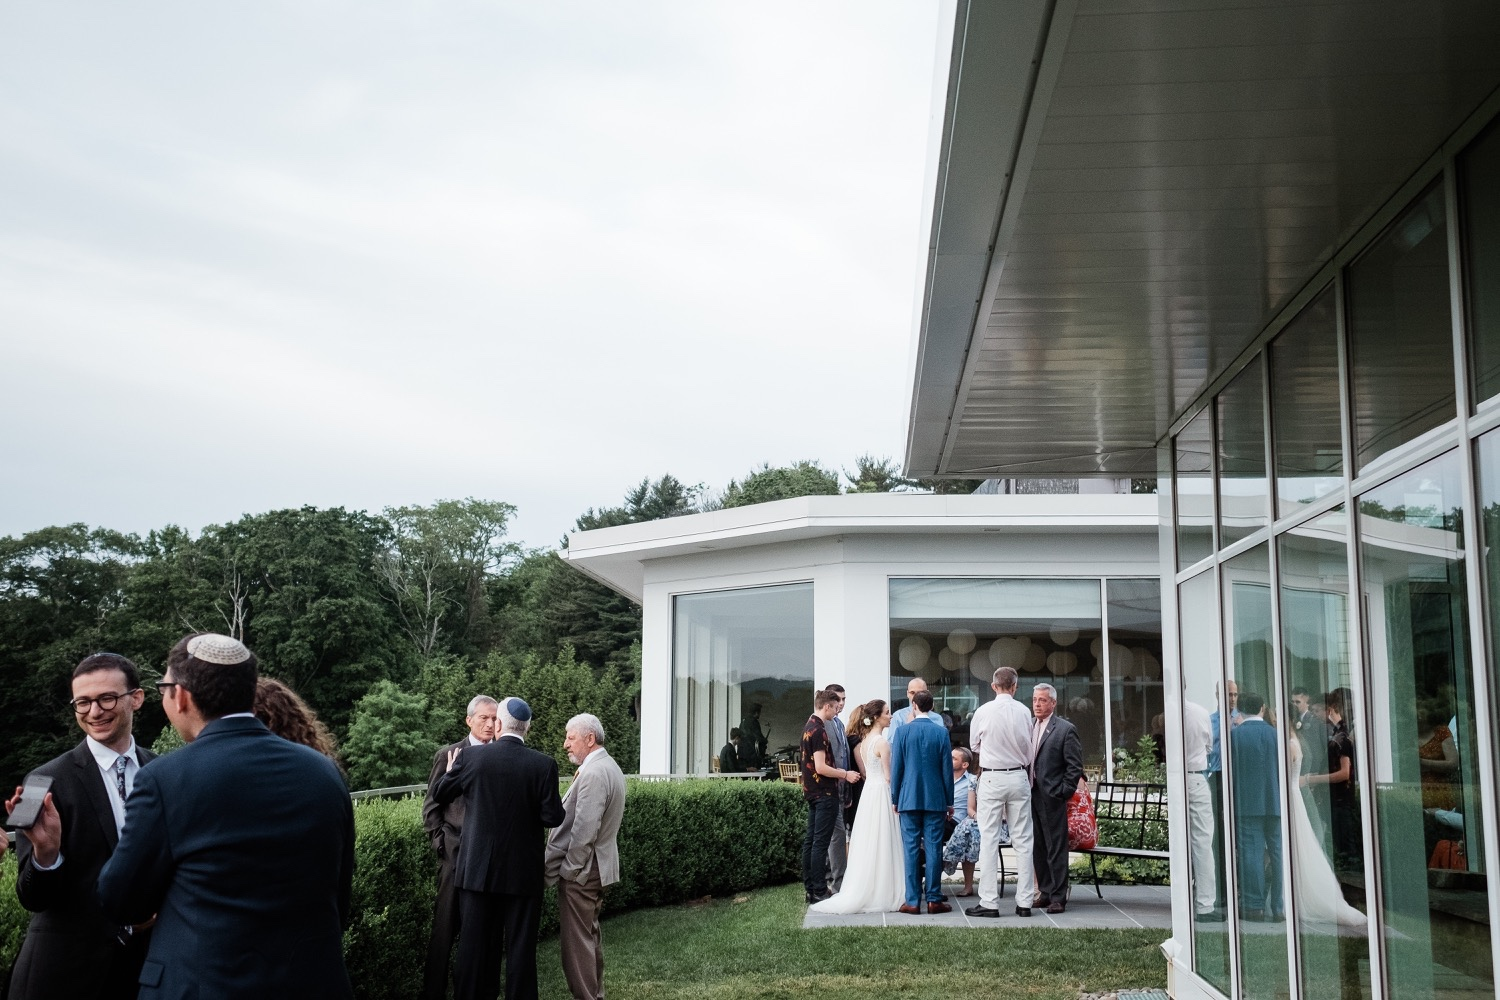 The Garrison Wedding, The Garrison venue, Hudson Valley wedding, hudson valley wedding photographer, catskills wedding photographer, the garrison wedding photos, jewish ceremony, photojournalist wedding photographer, jewish wedding photographer, jewish wedding photos, jewish ceremony ideas